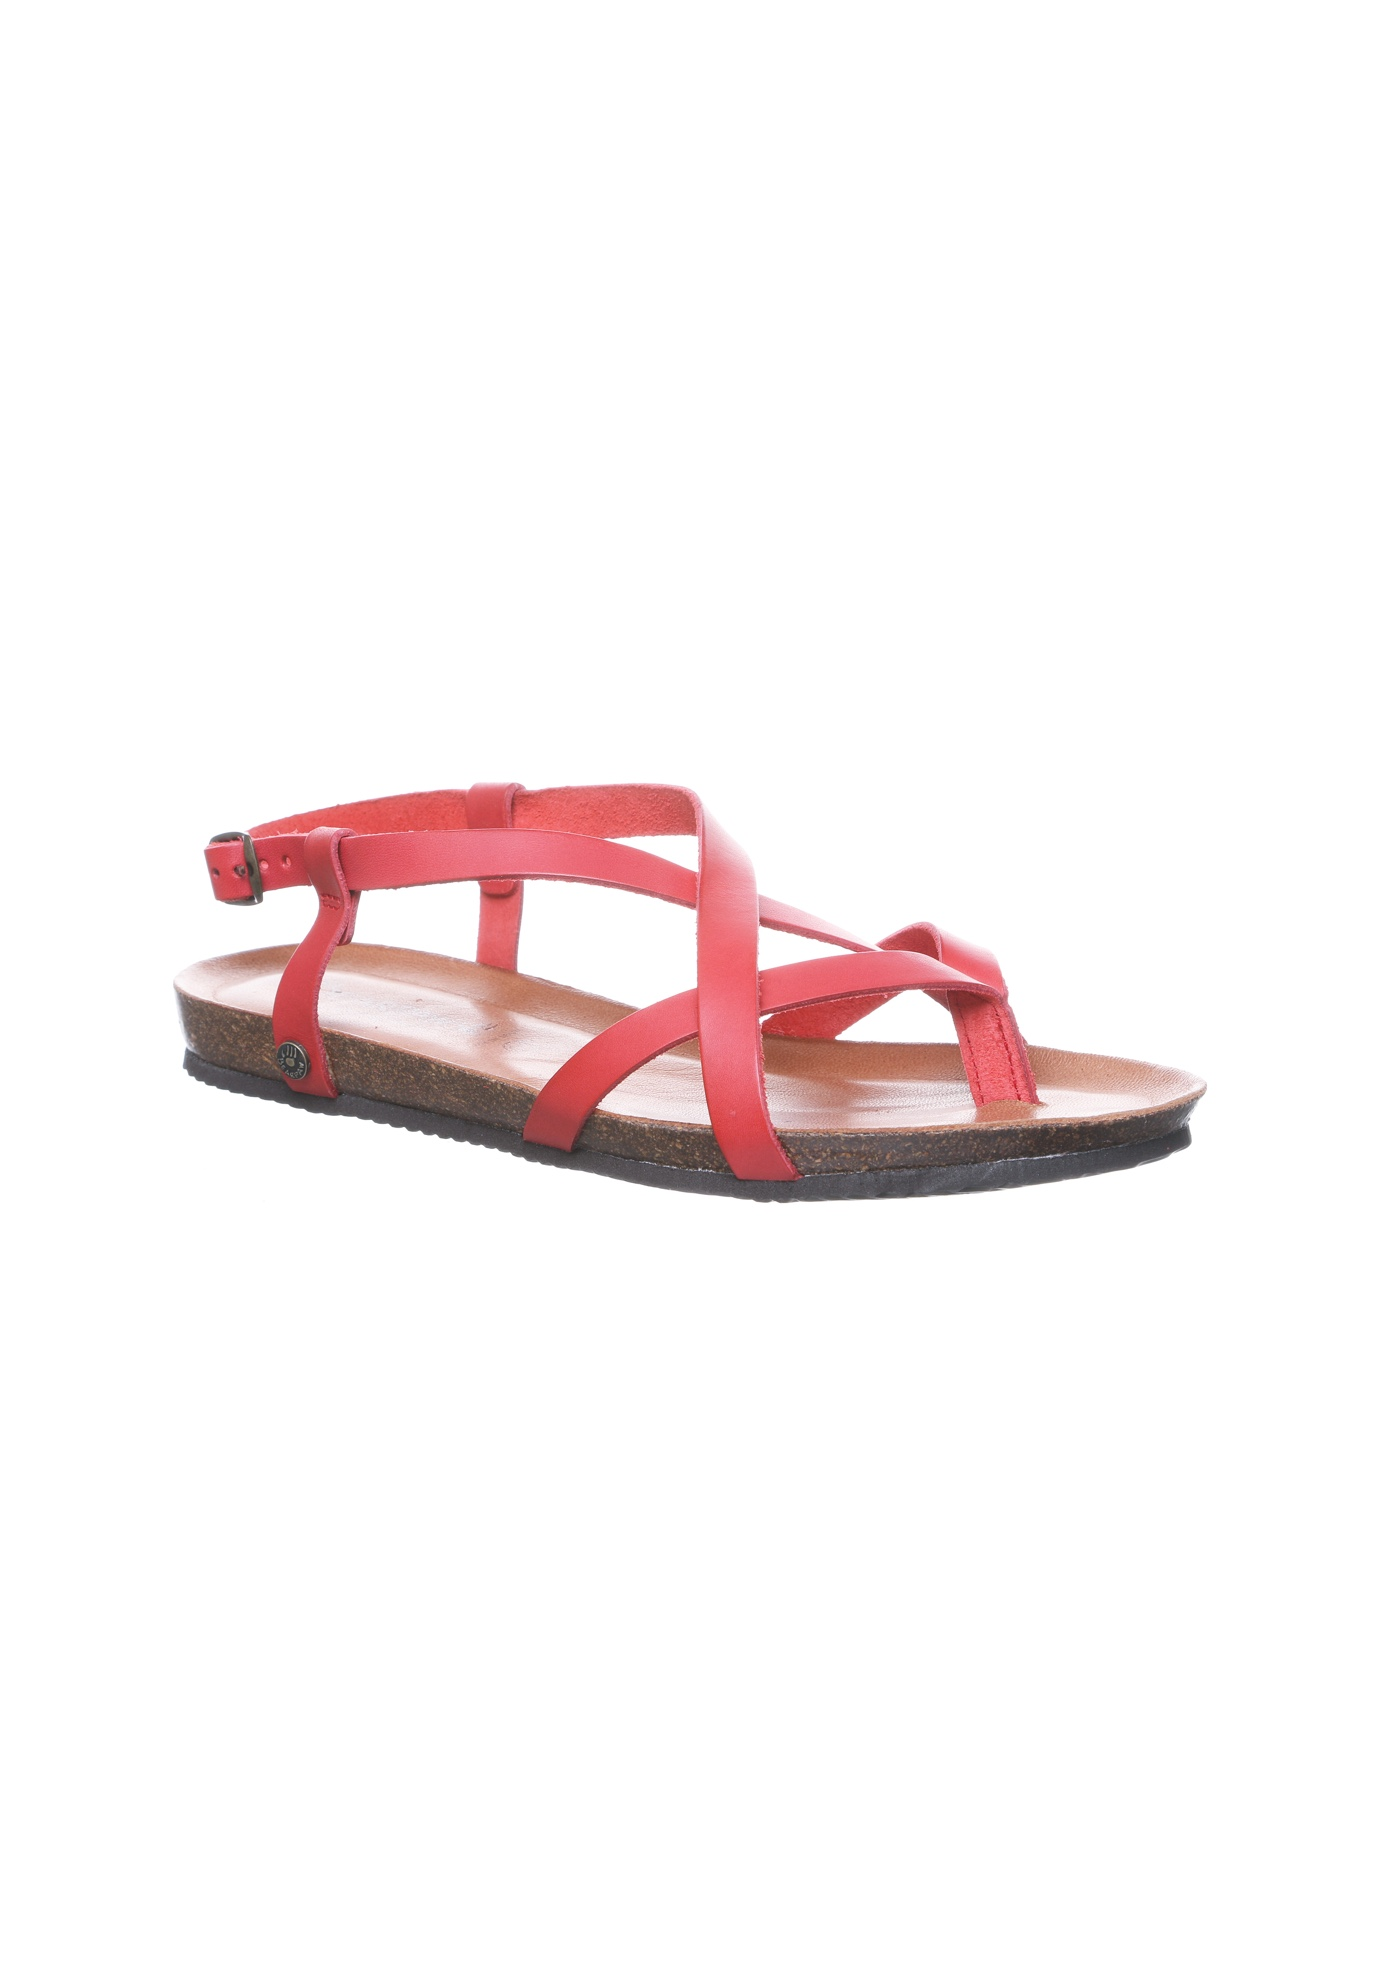 Lucia Sandals by Bearpaw,